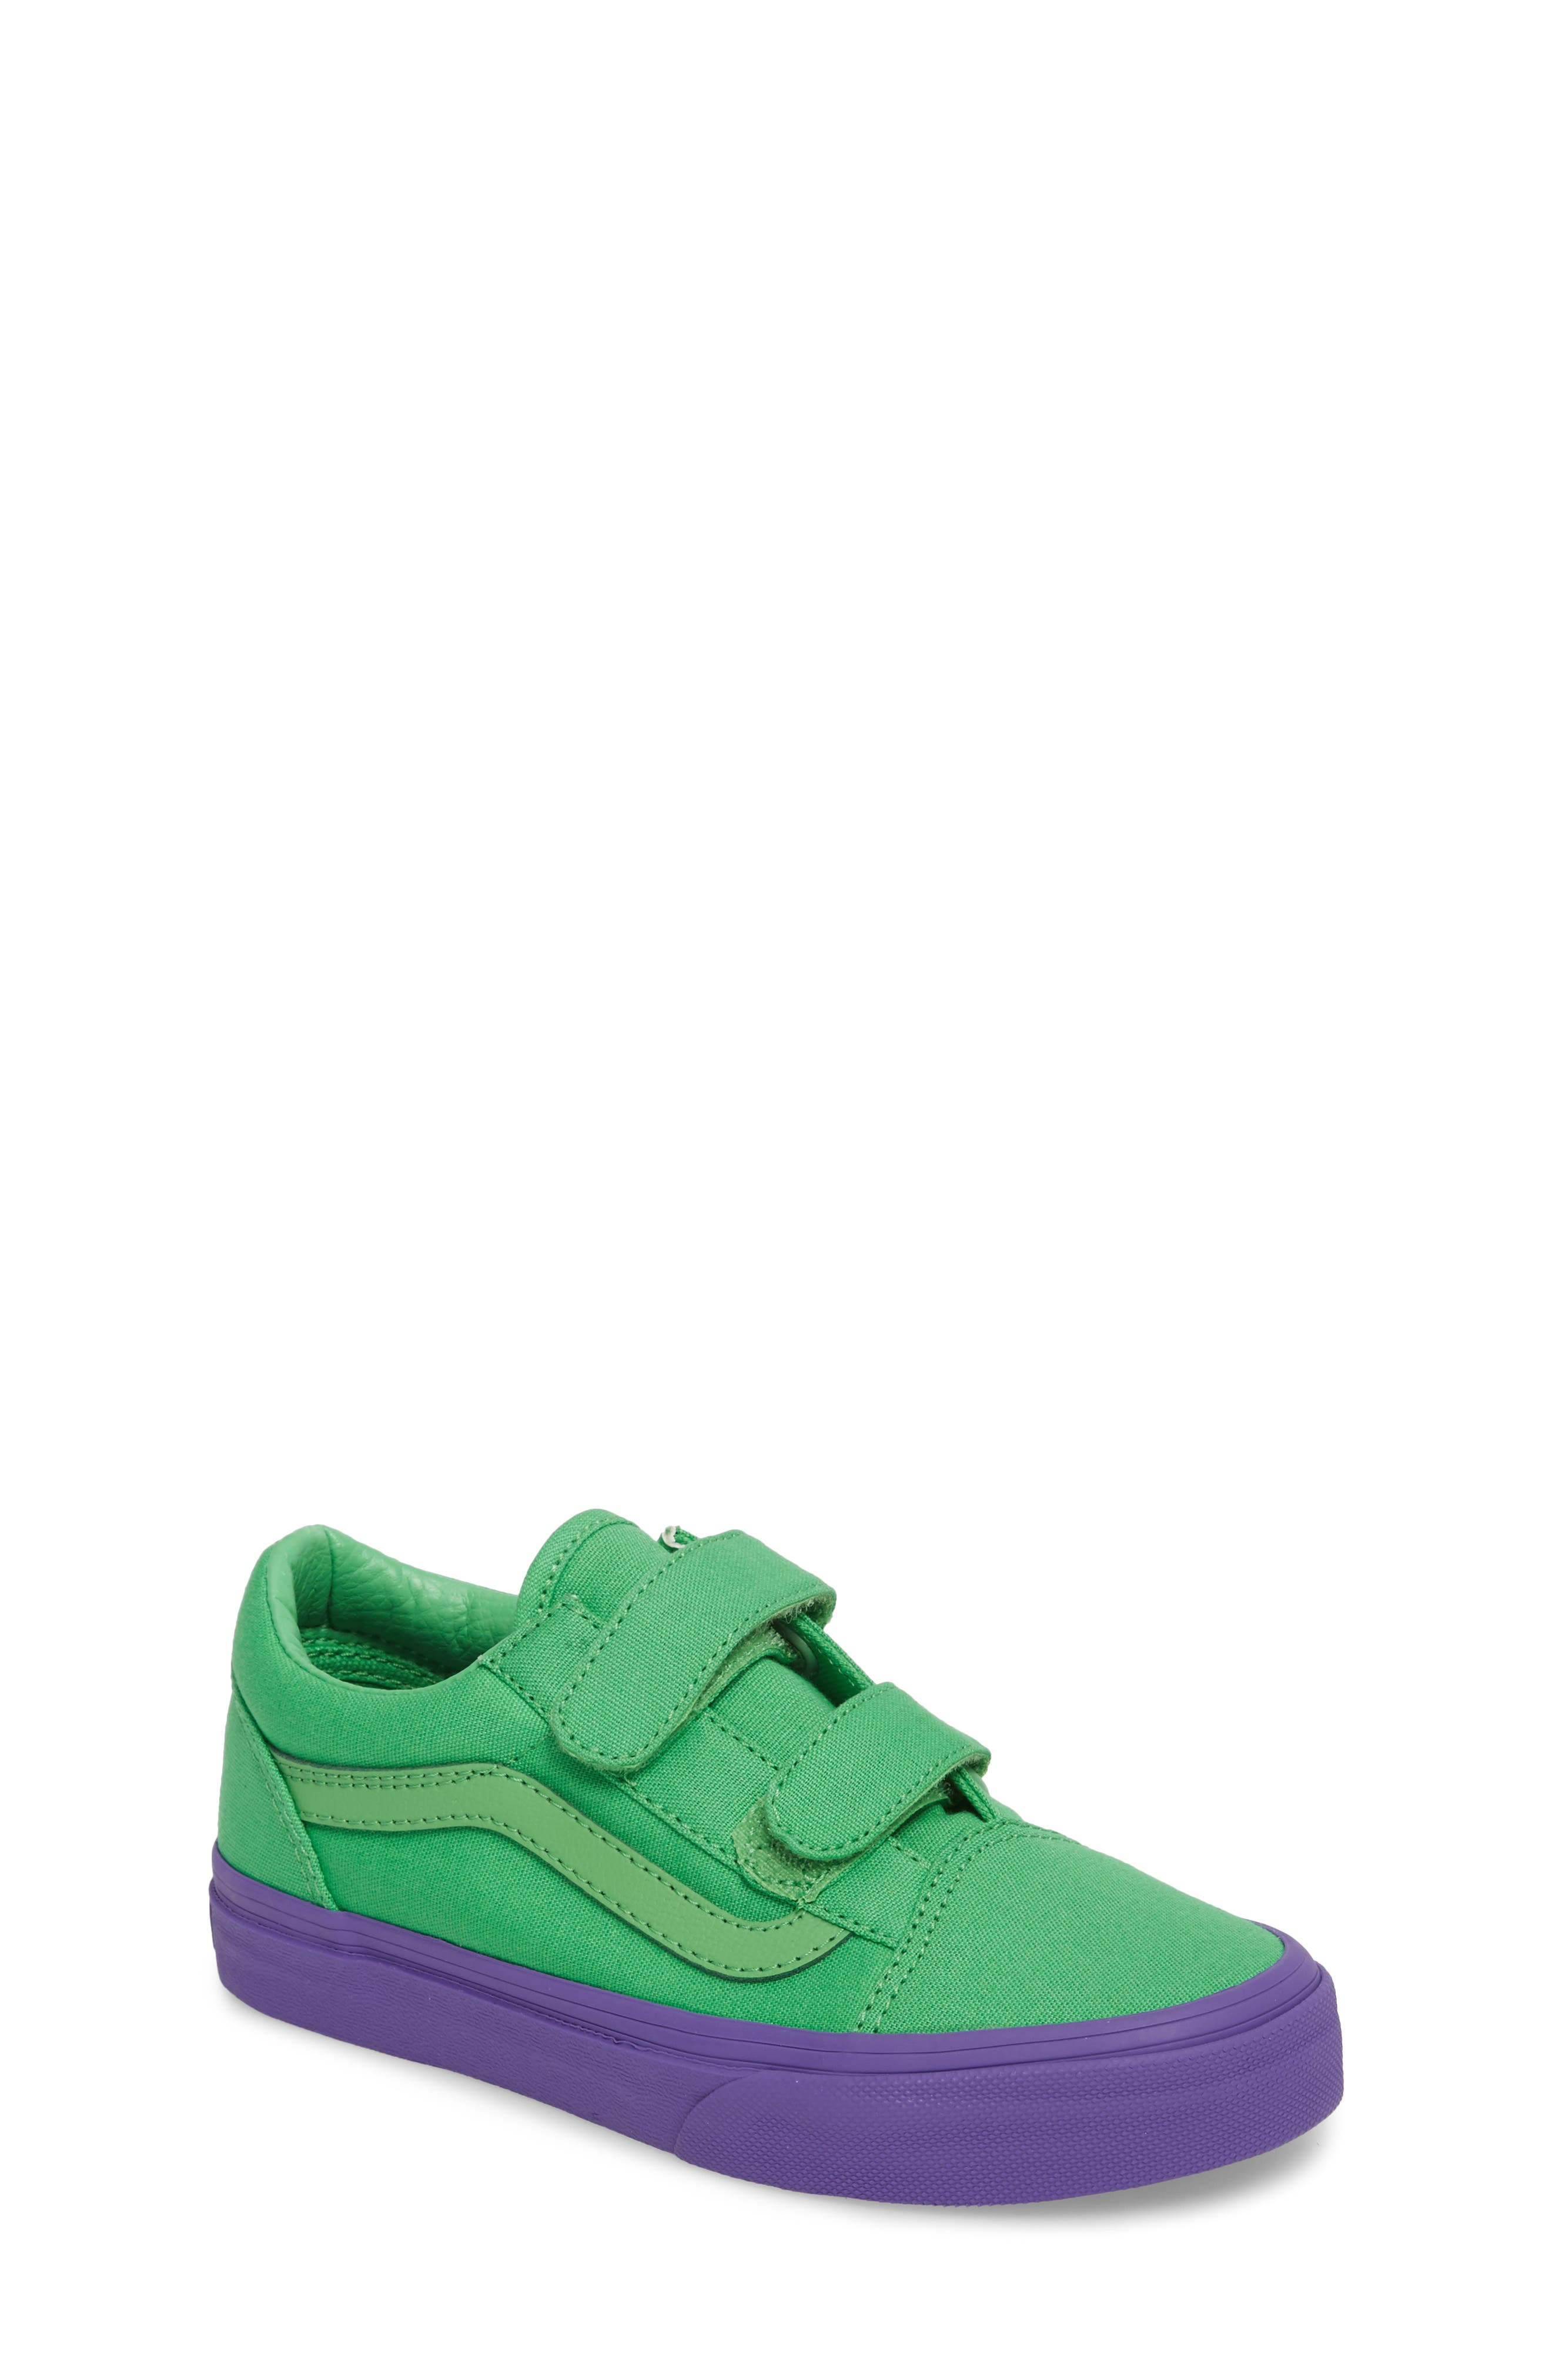 Old Skool V Sneaker,                             Main thumbnail 1, color,                             Green/ Purple Cosplay